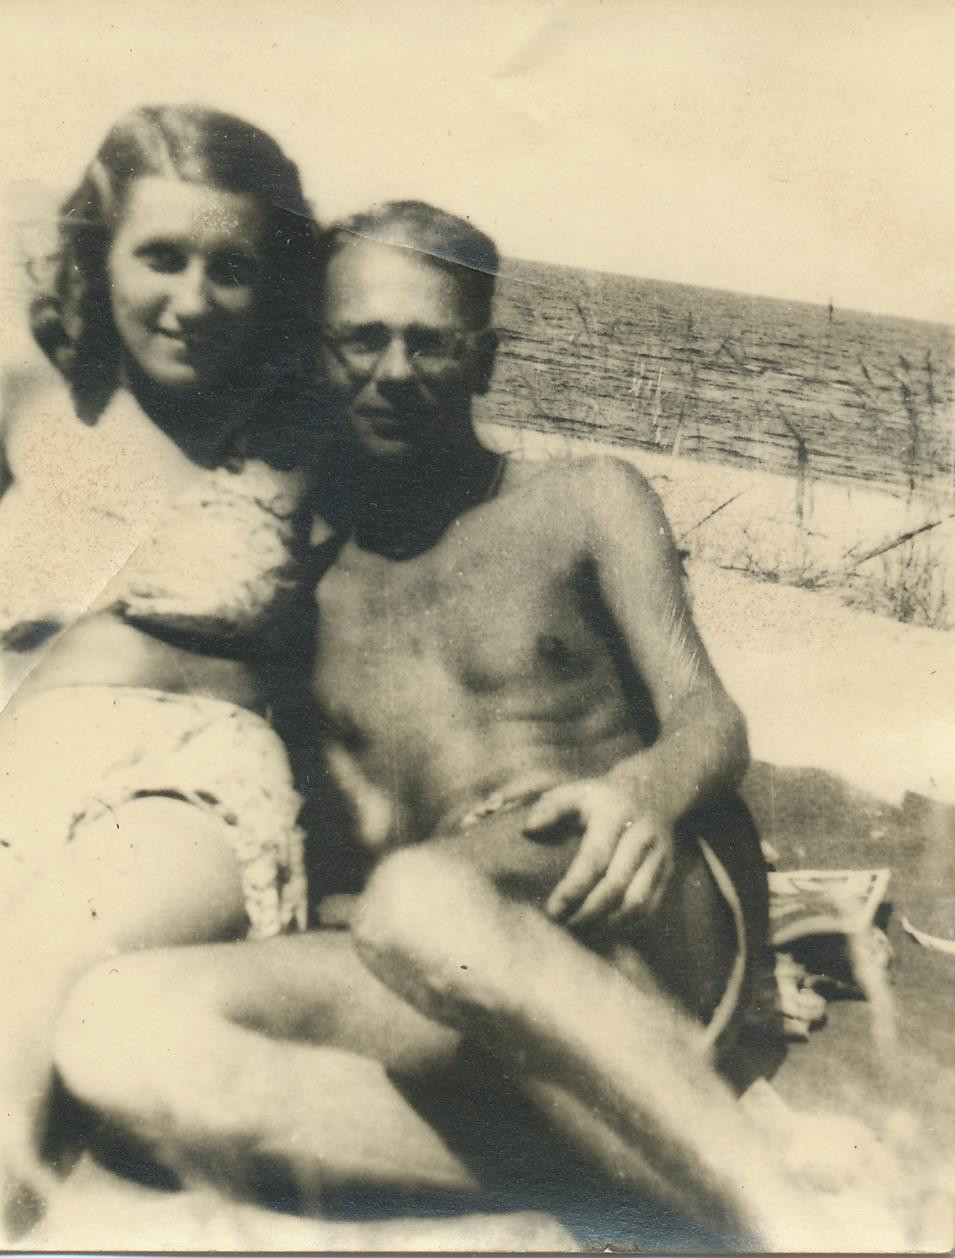 Christof Stribning and unknown woman, c.1941. Jūrmala, Latvia.